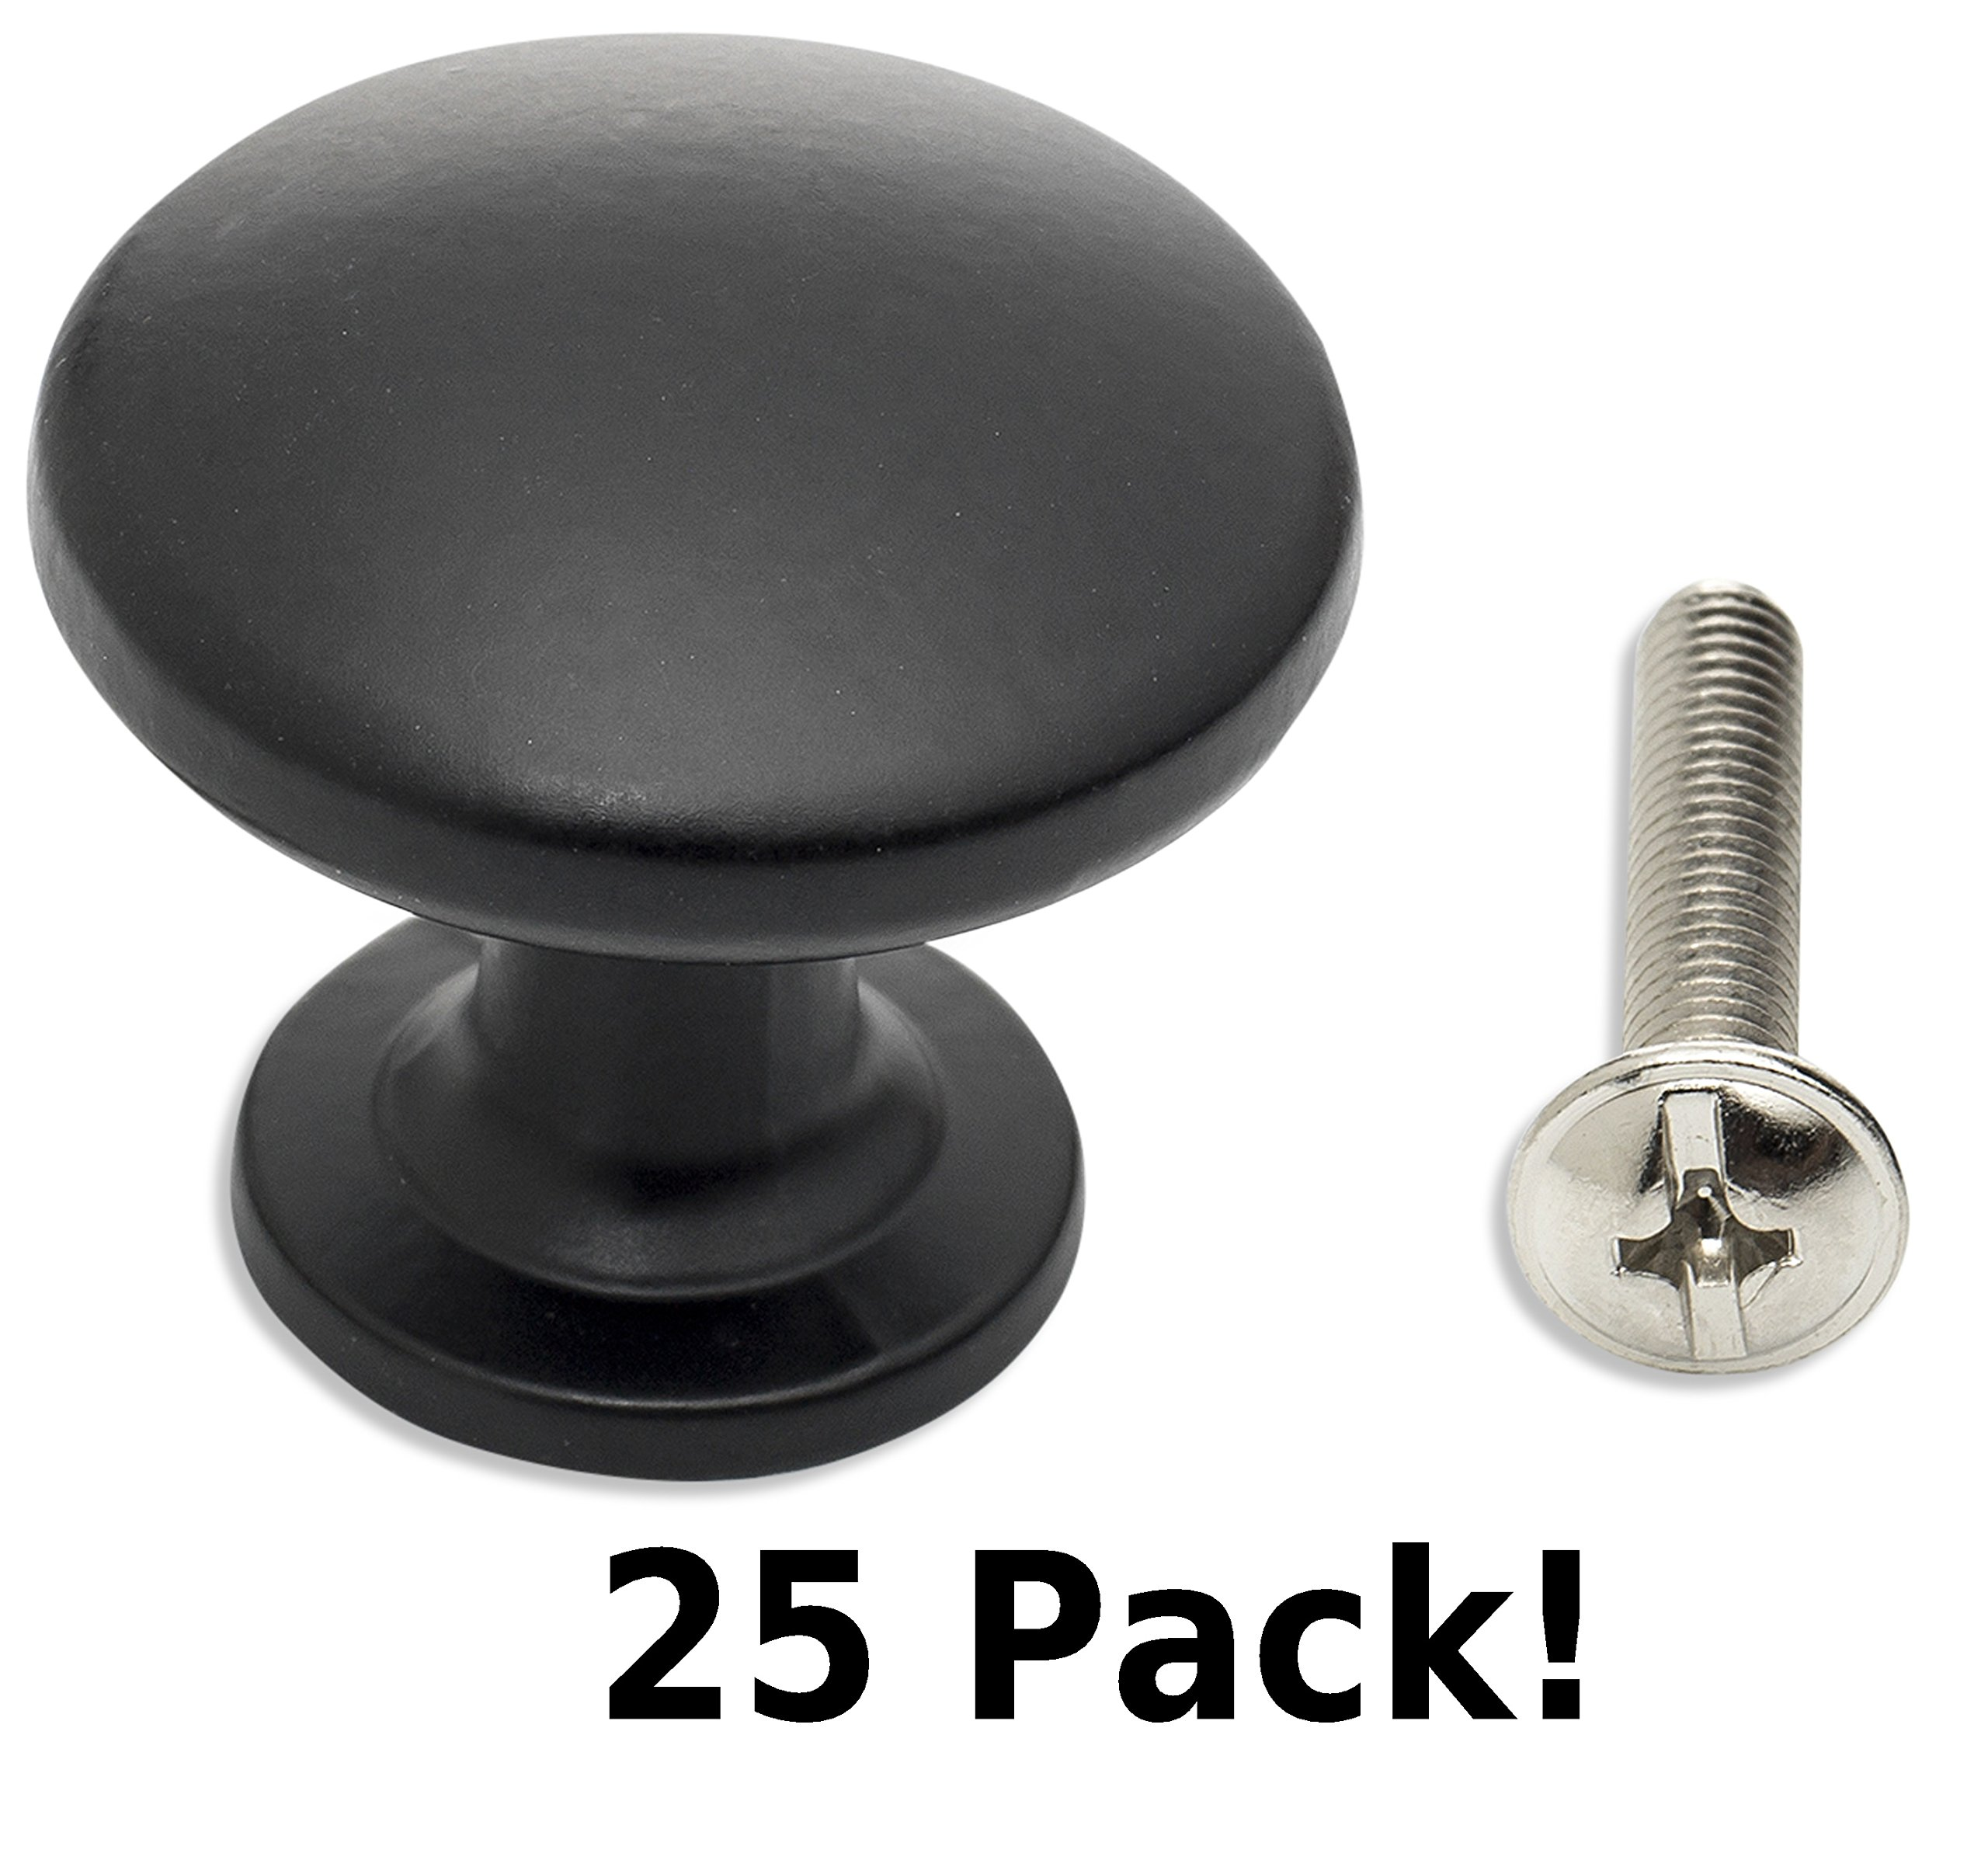 Black Cabinet & Drawer Knobs—Round Knobs for Kitchen Cabinet, Bathroom, 1-3/16 inch. (25 pack) by Frontier Hardware